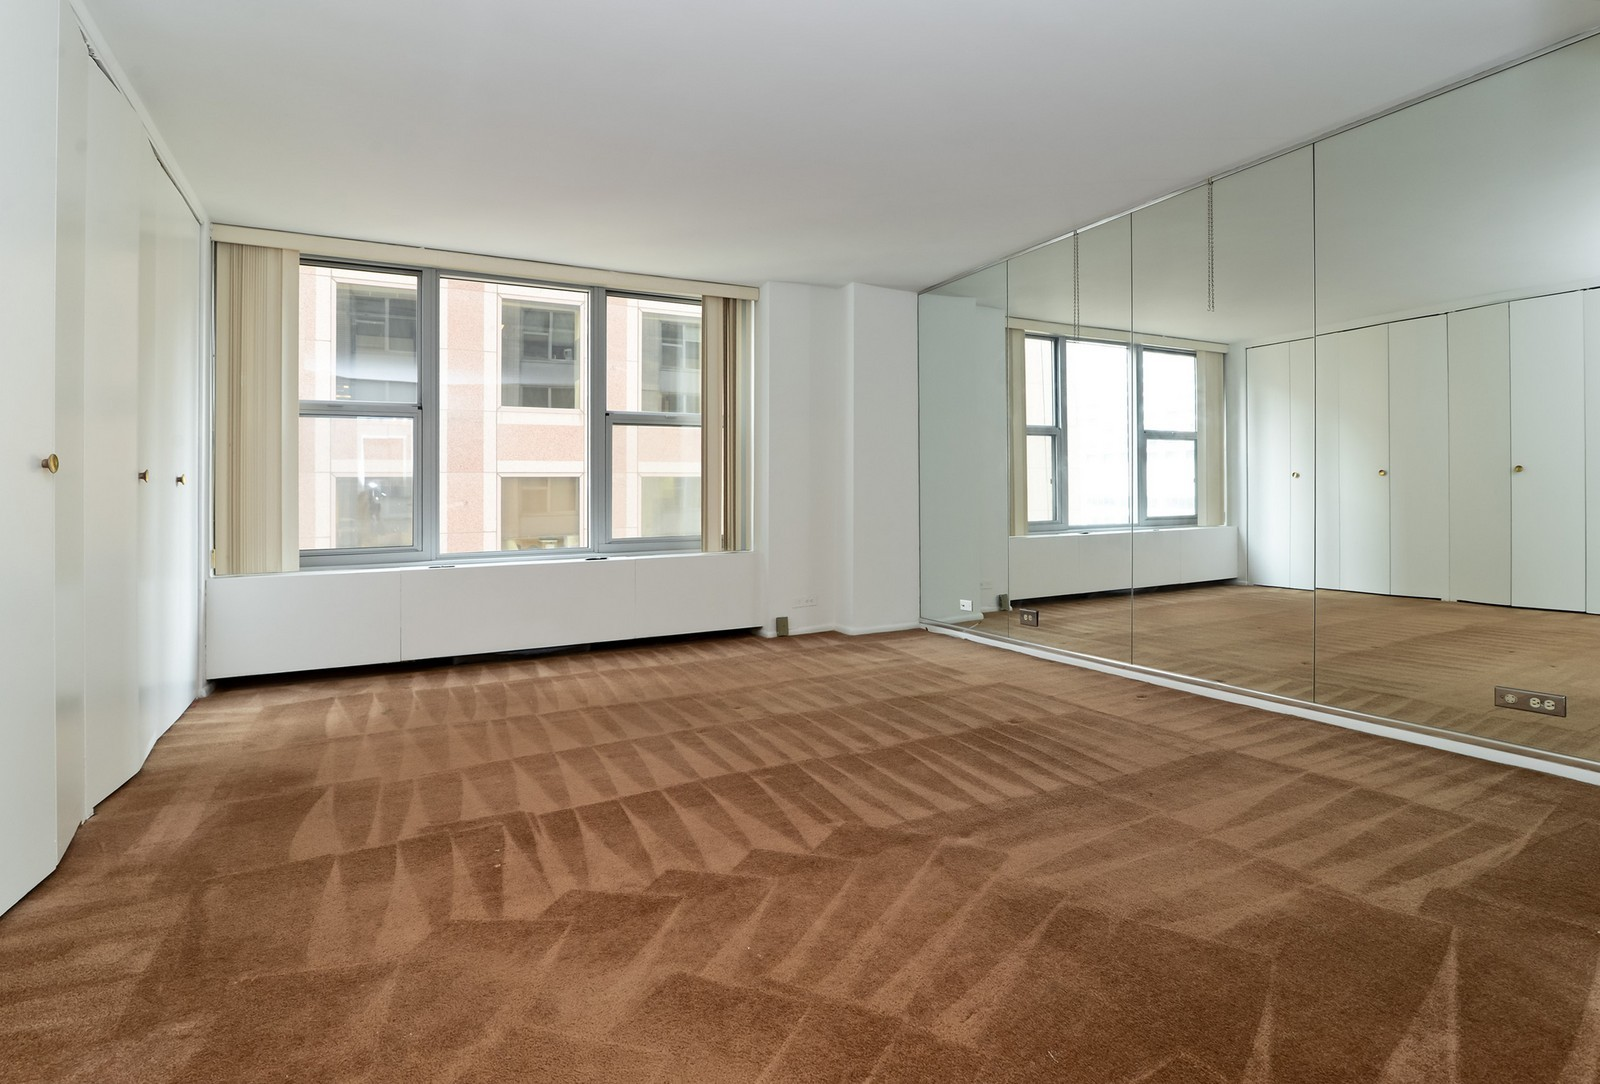 Real Estate Photography - 777 N Michigan Ave, Unit 2200, Chicago, IL, 60611 - Master Bedroom